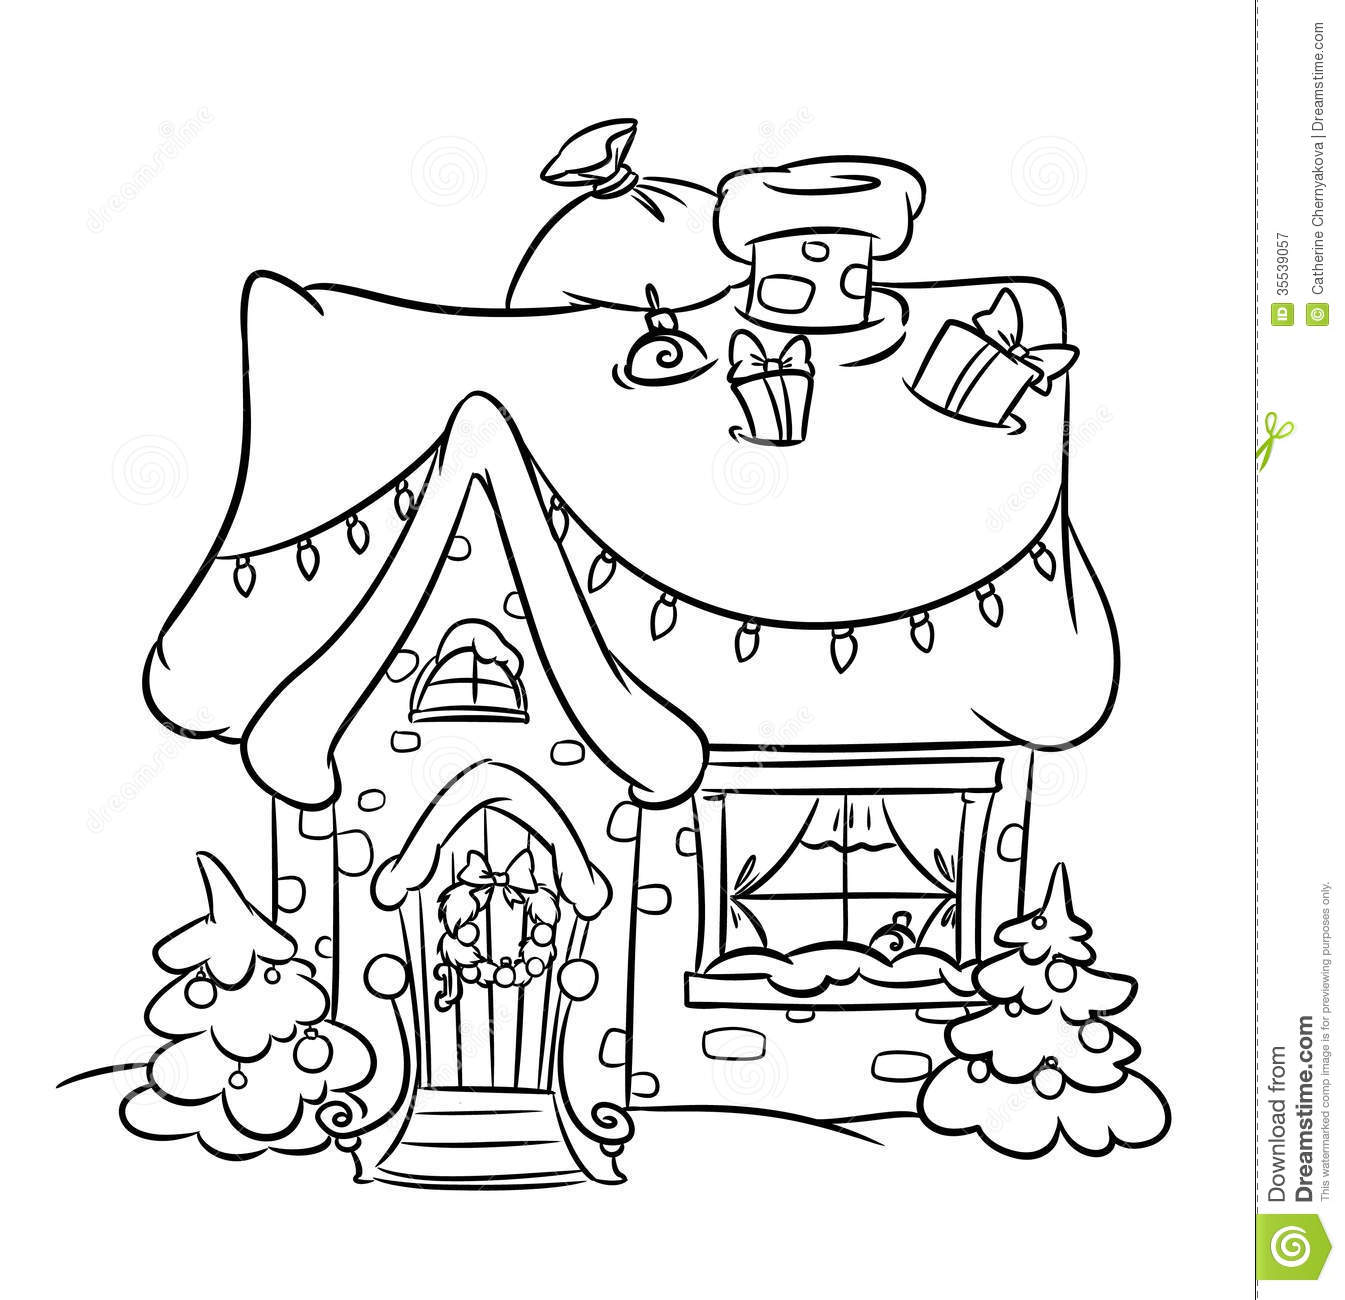 Kleurplaat Kerst Snoopy Christmas Snow House Stock Illustration Illustration Of